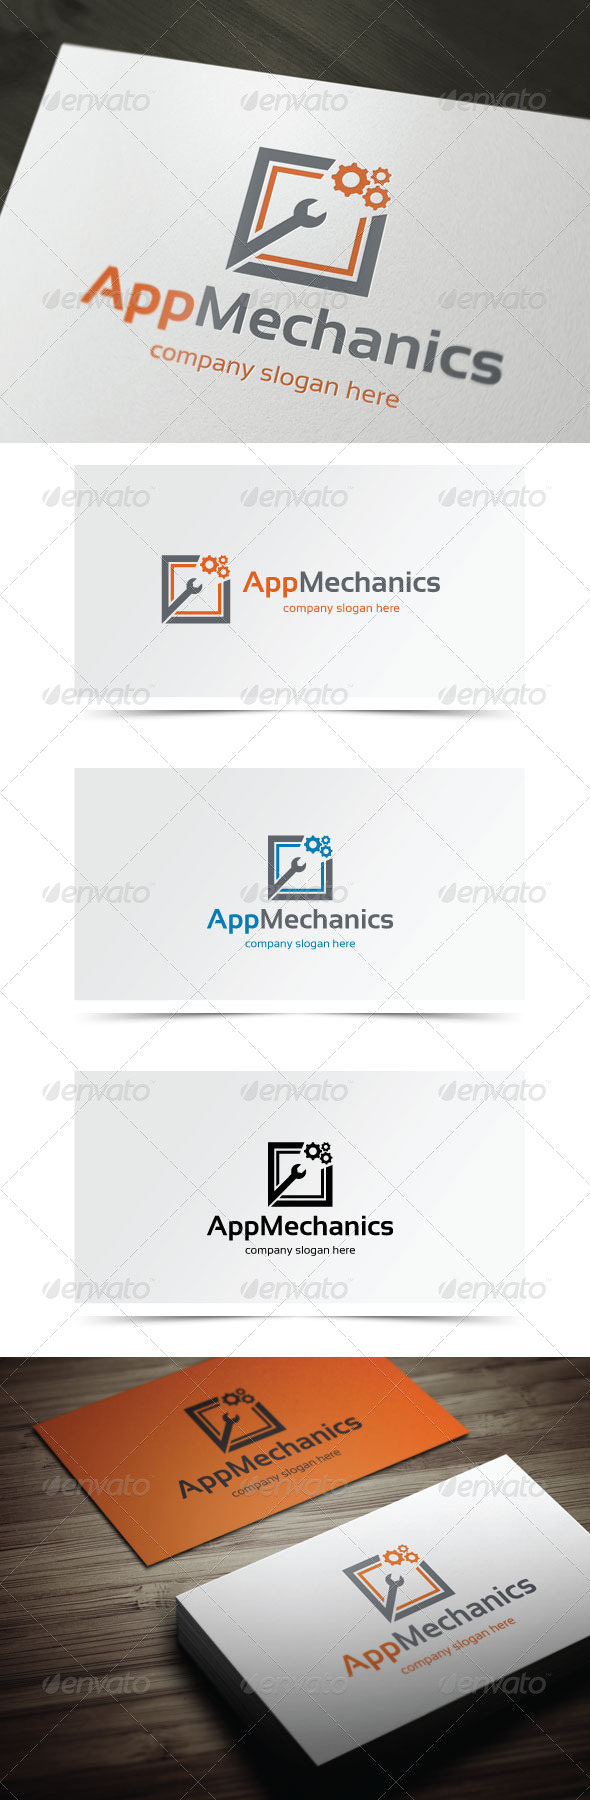 App Mechanics - Symbols Logo Templates